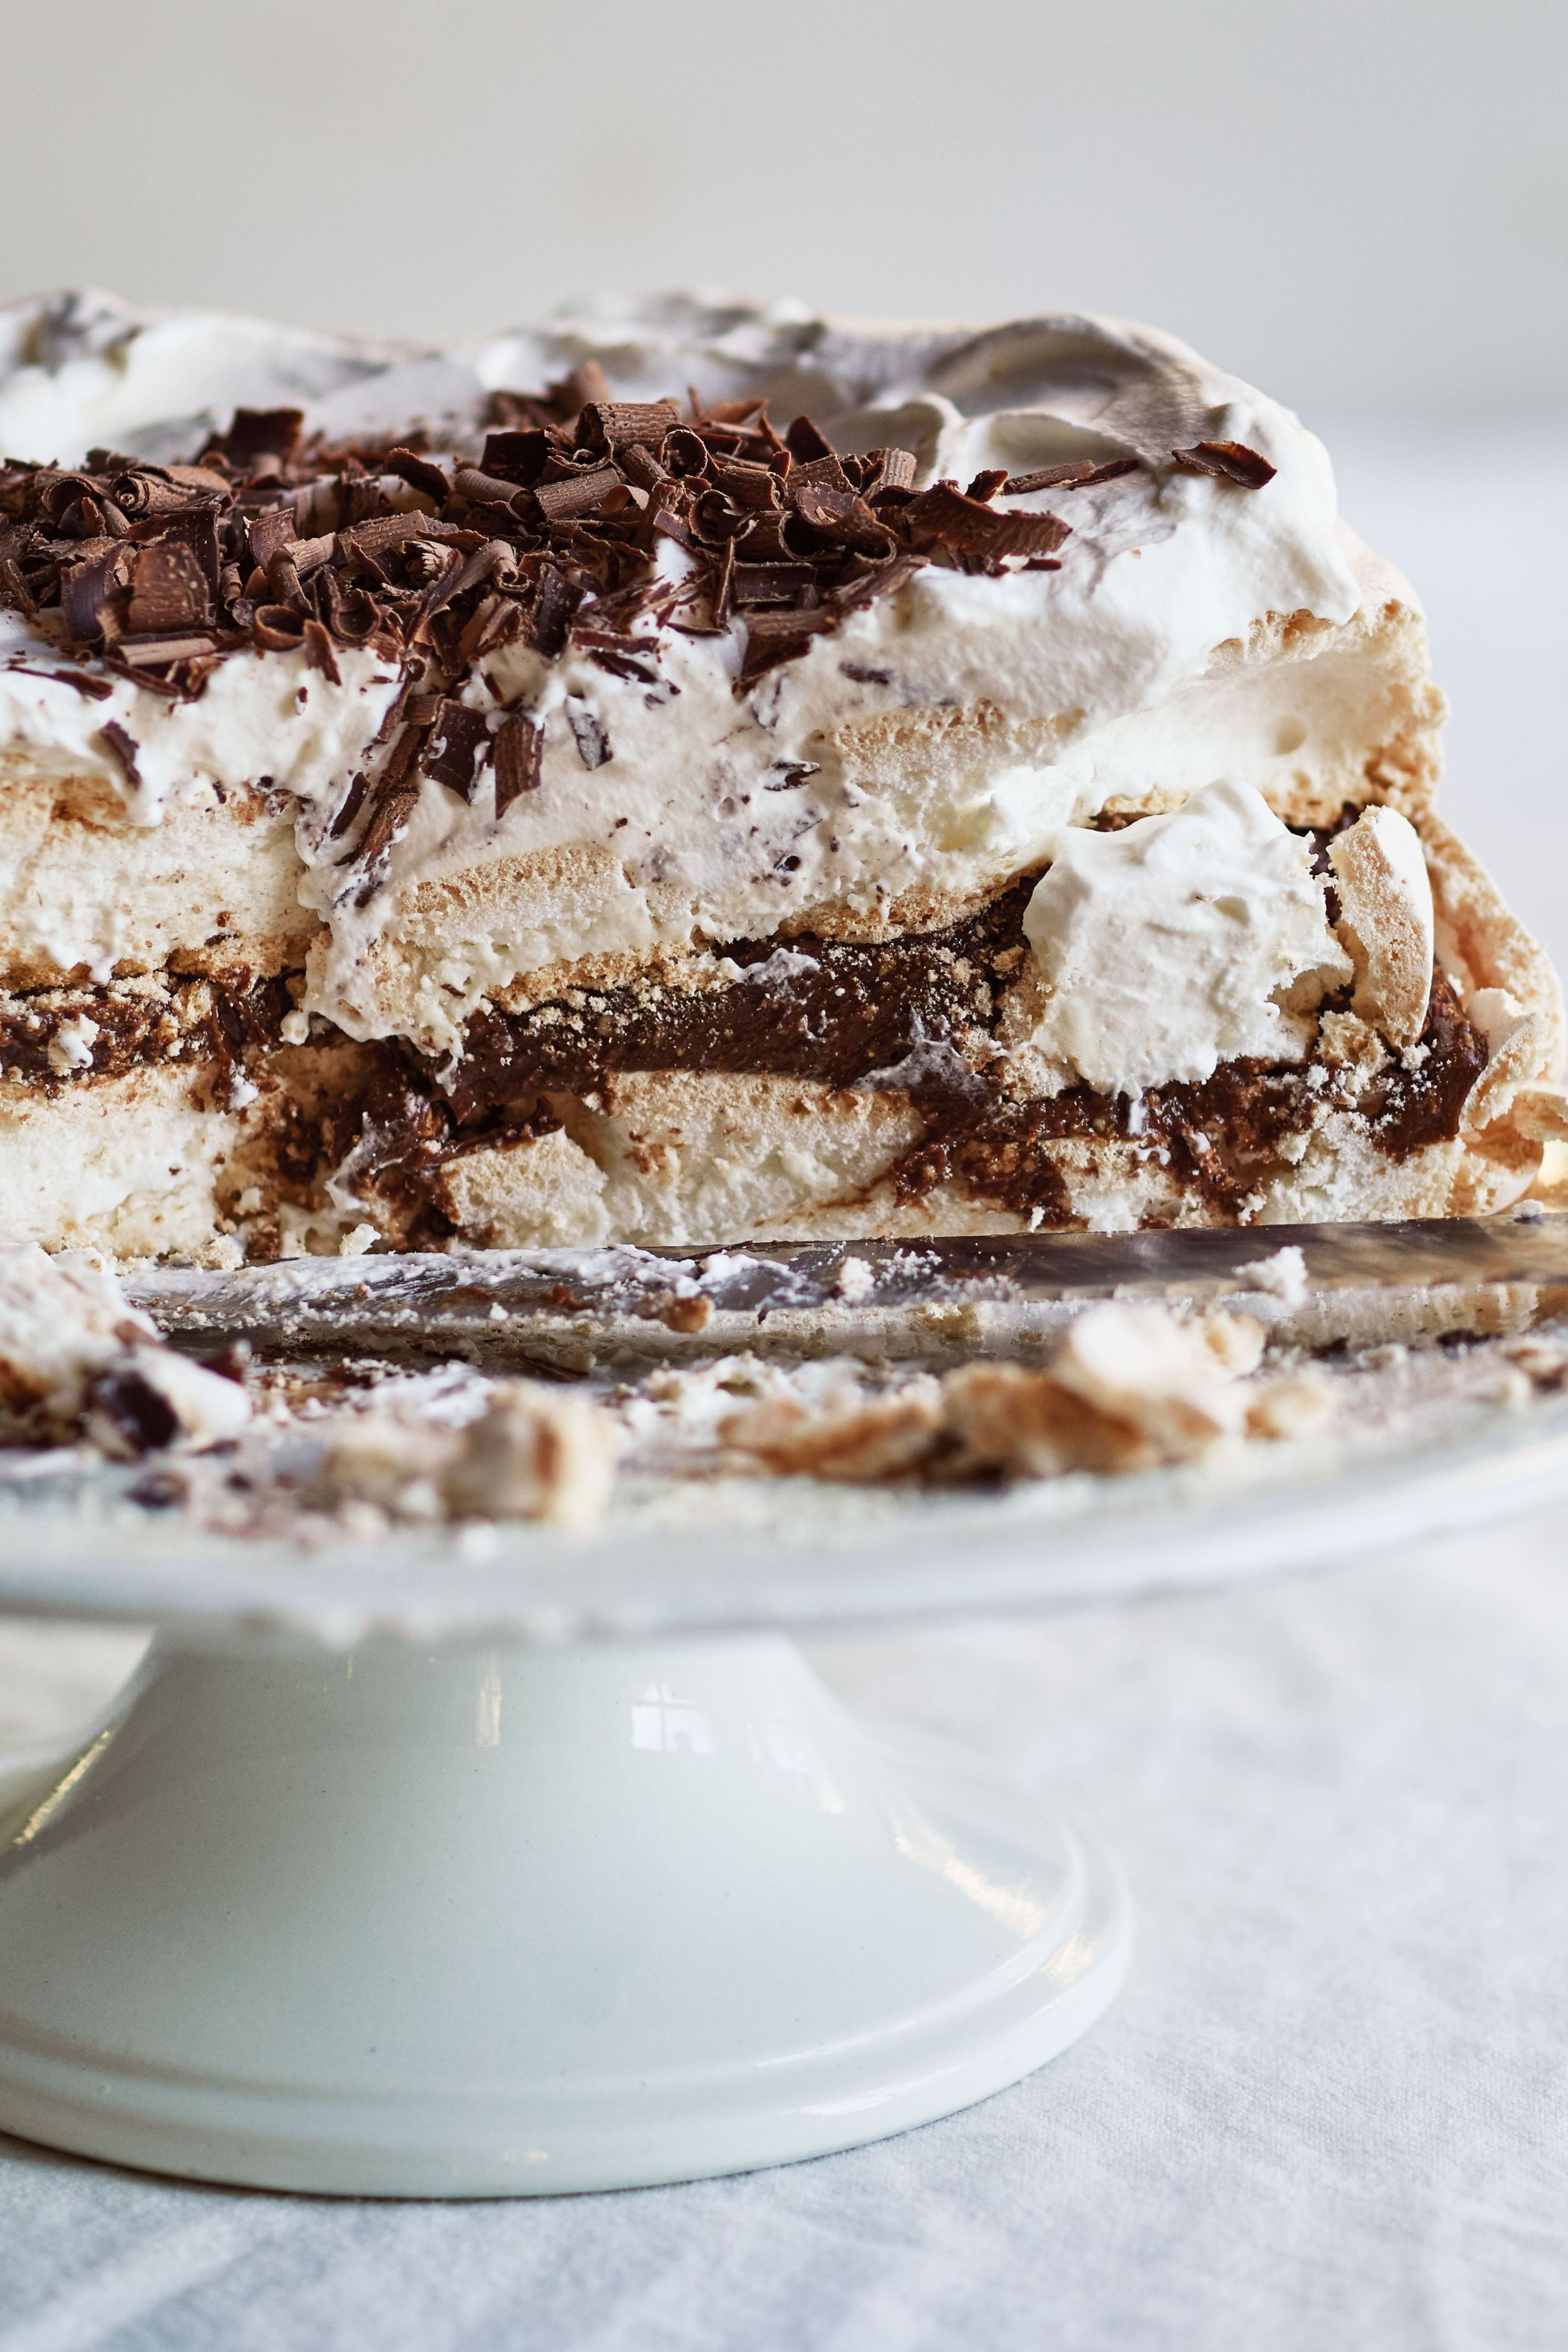 Food: Ina Garten's Chocolate Pecan Meringue Torte Recipe